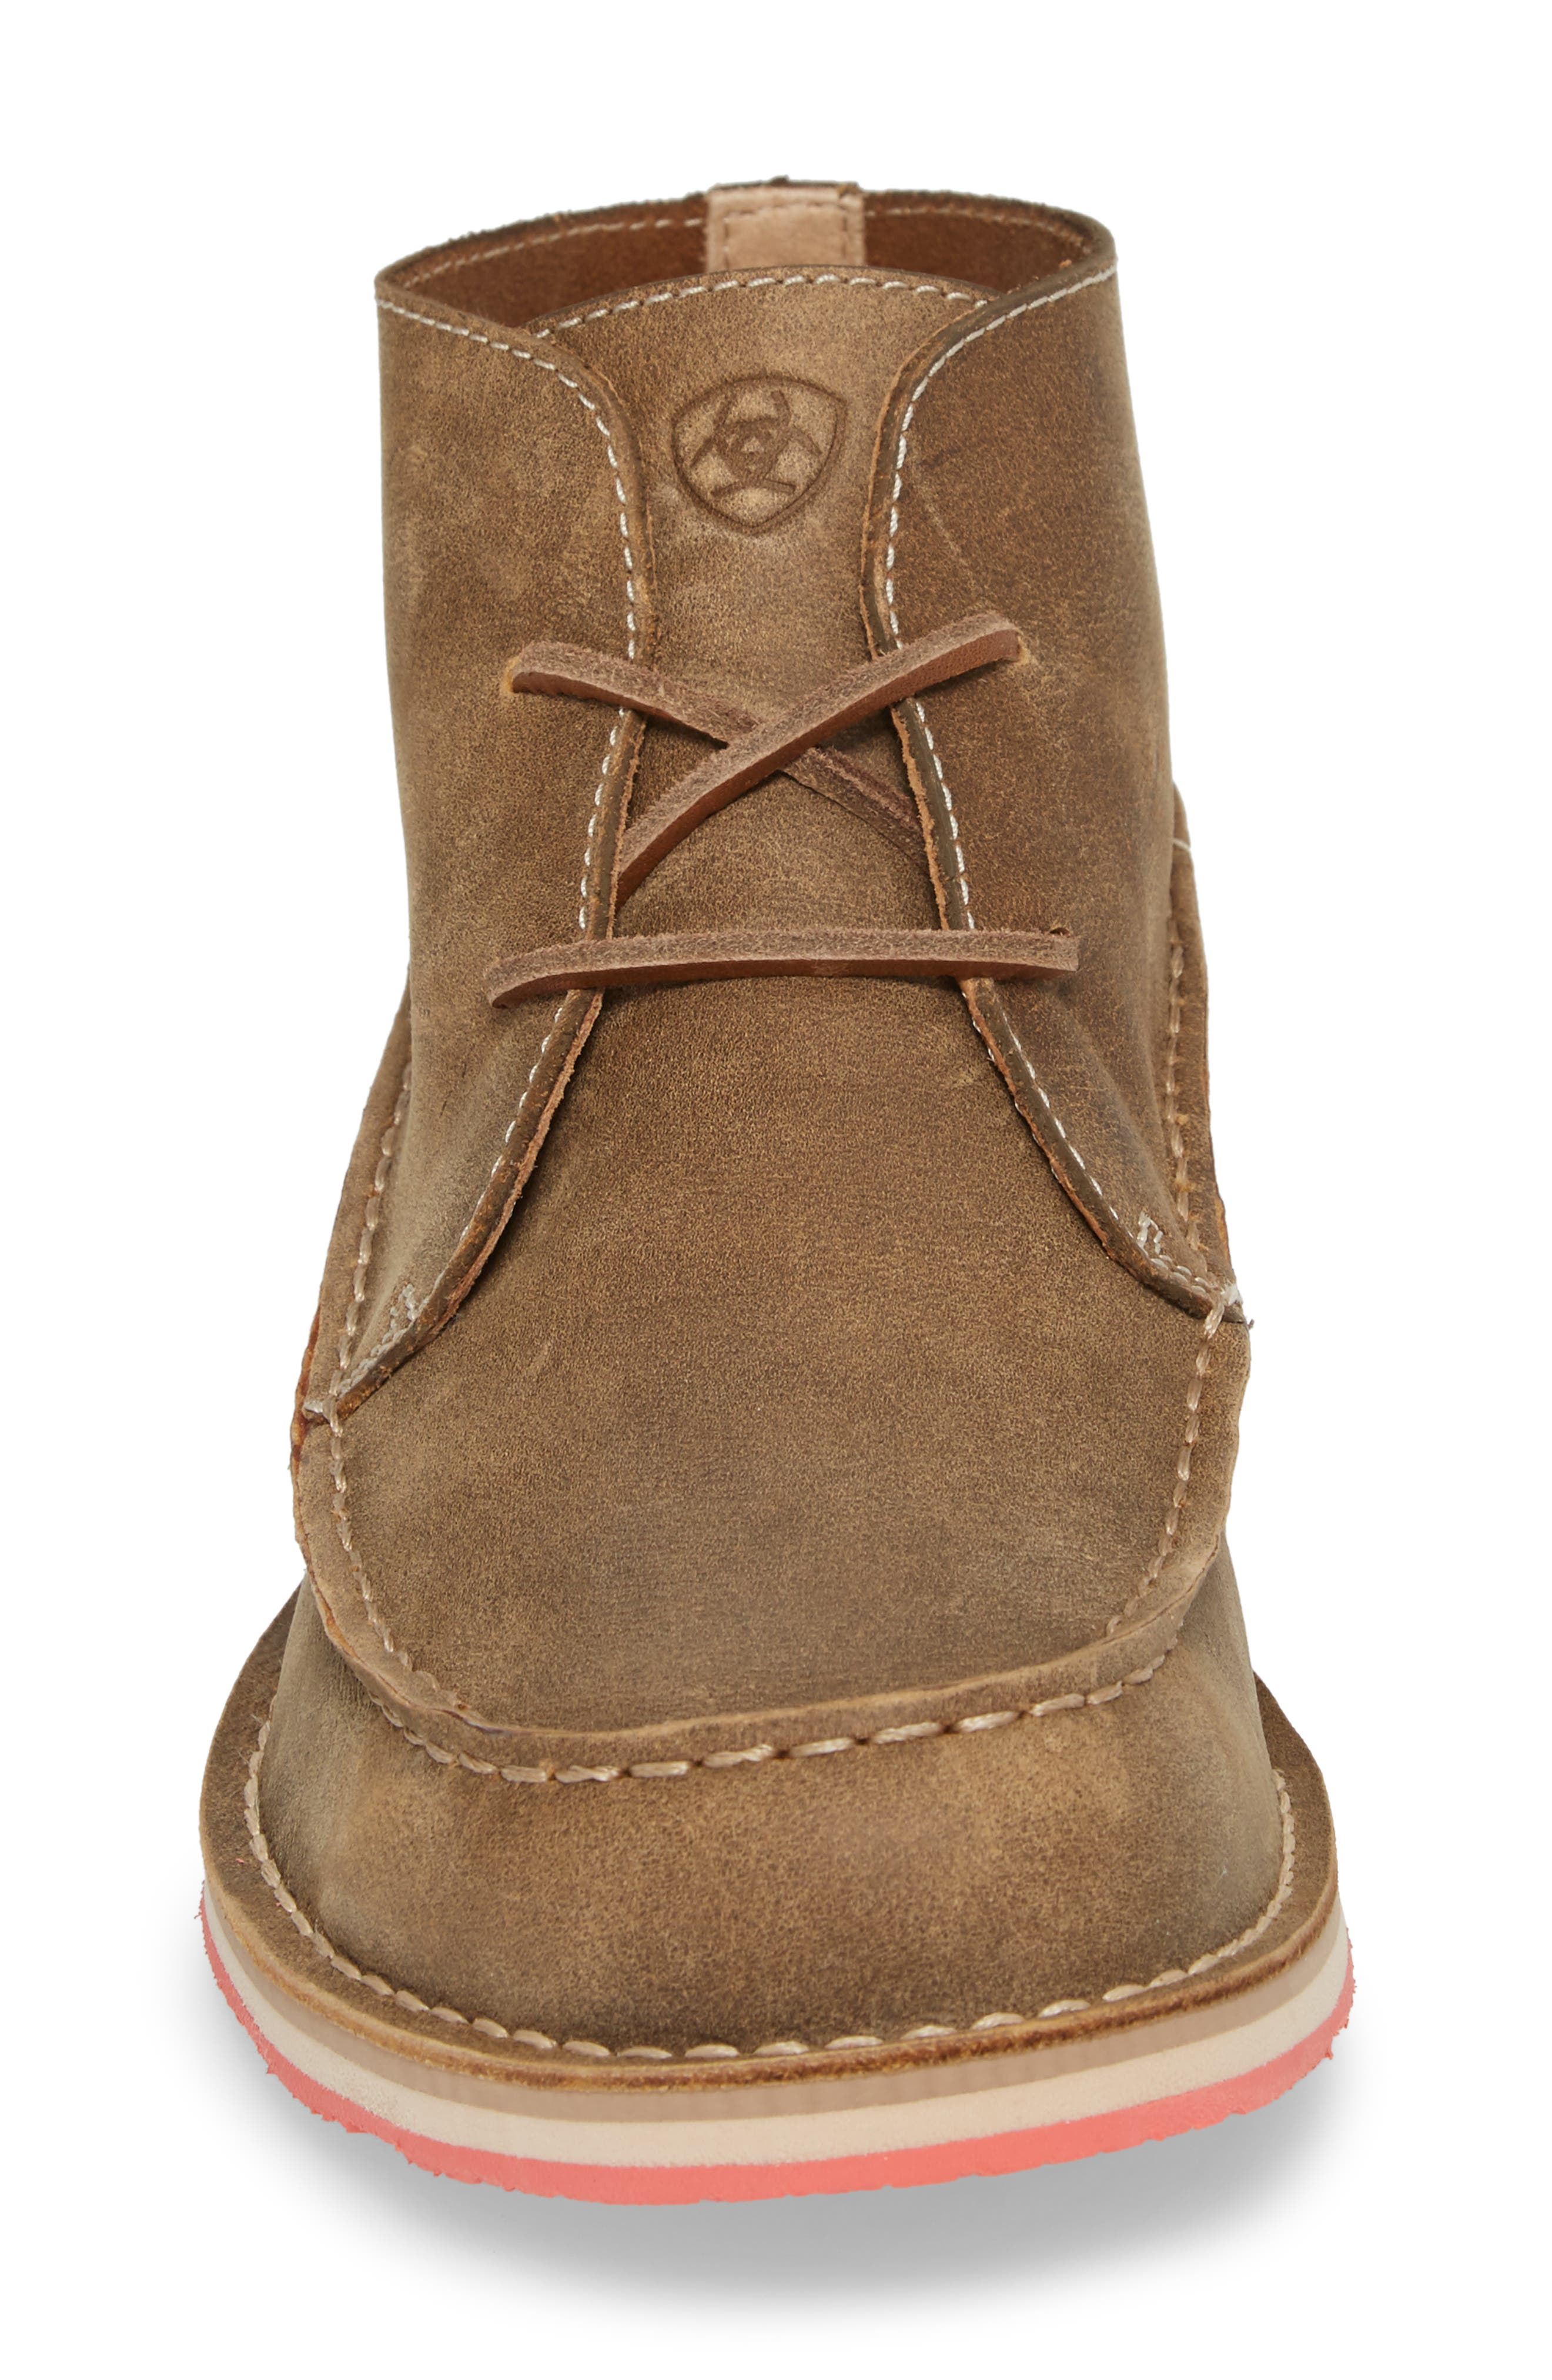 Cruiser Chukka Boot,                             Alternate thumbnail 4, color,                             Lace Brown Bomber Leather